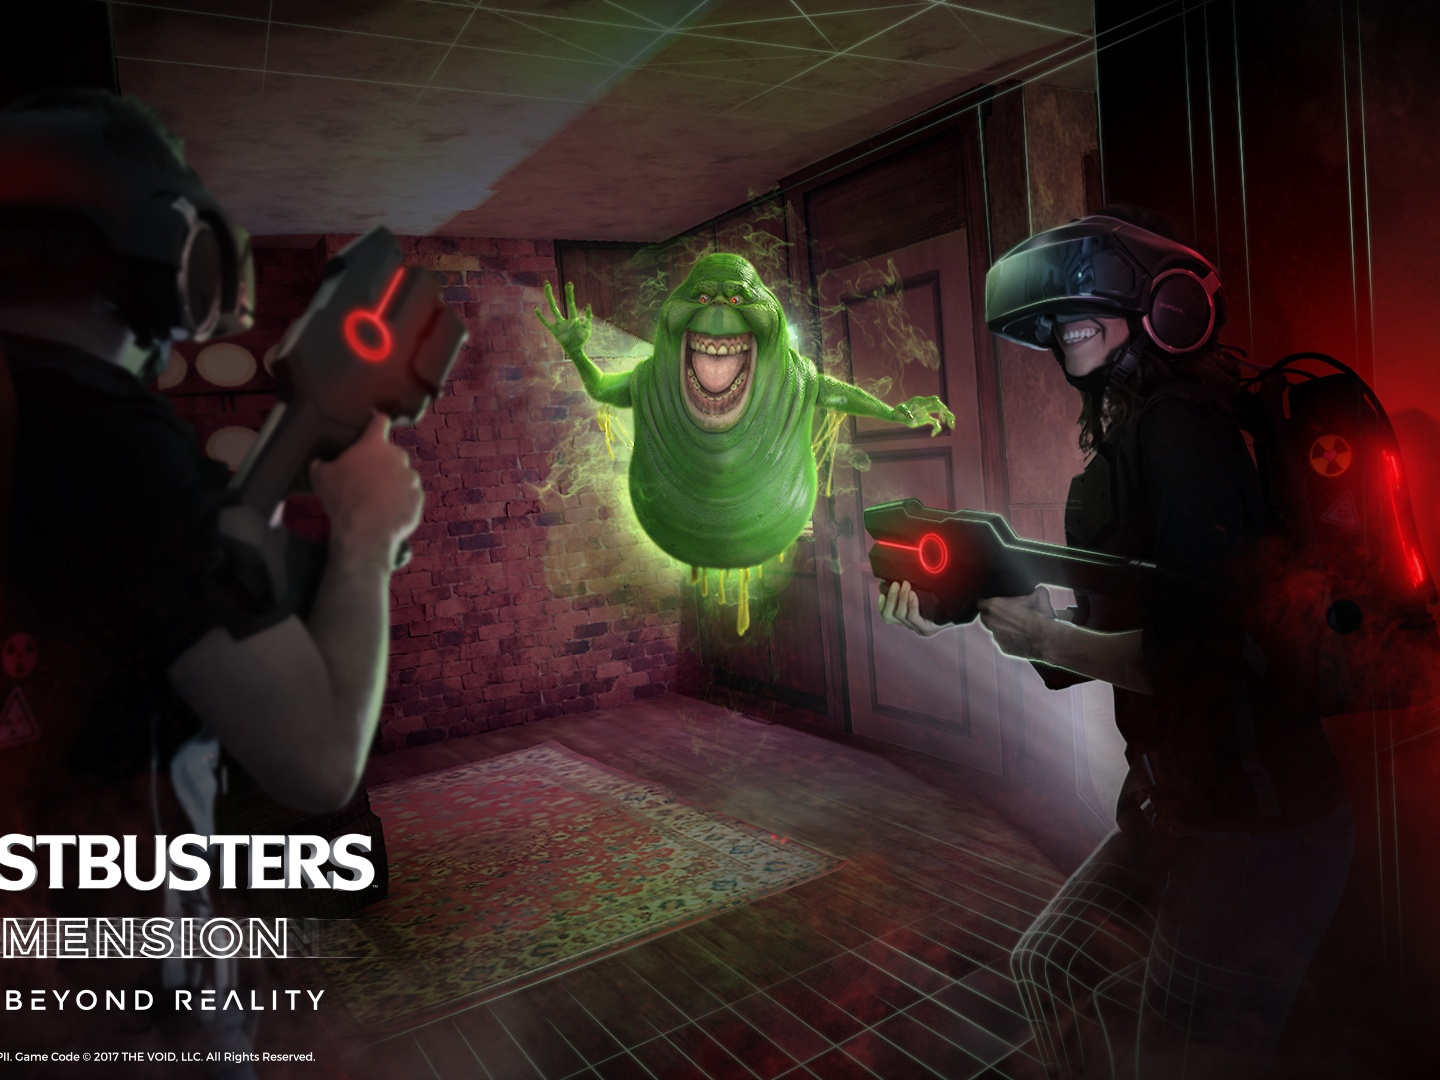 Step Beyond Reality with THE VOID's Ghostbusters: Dimension Thumbnail